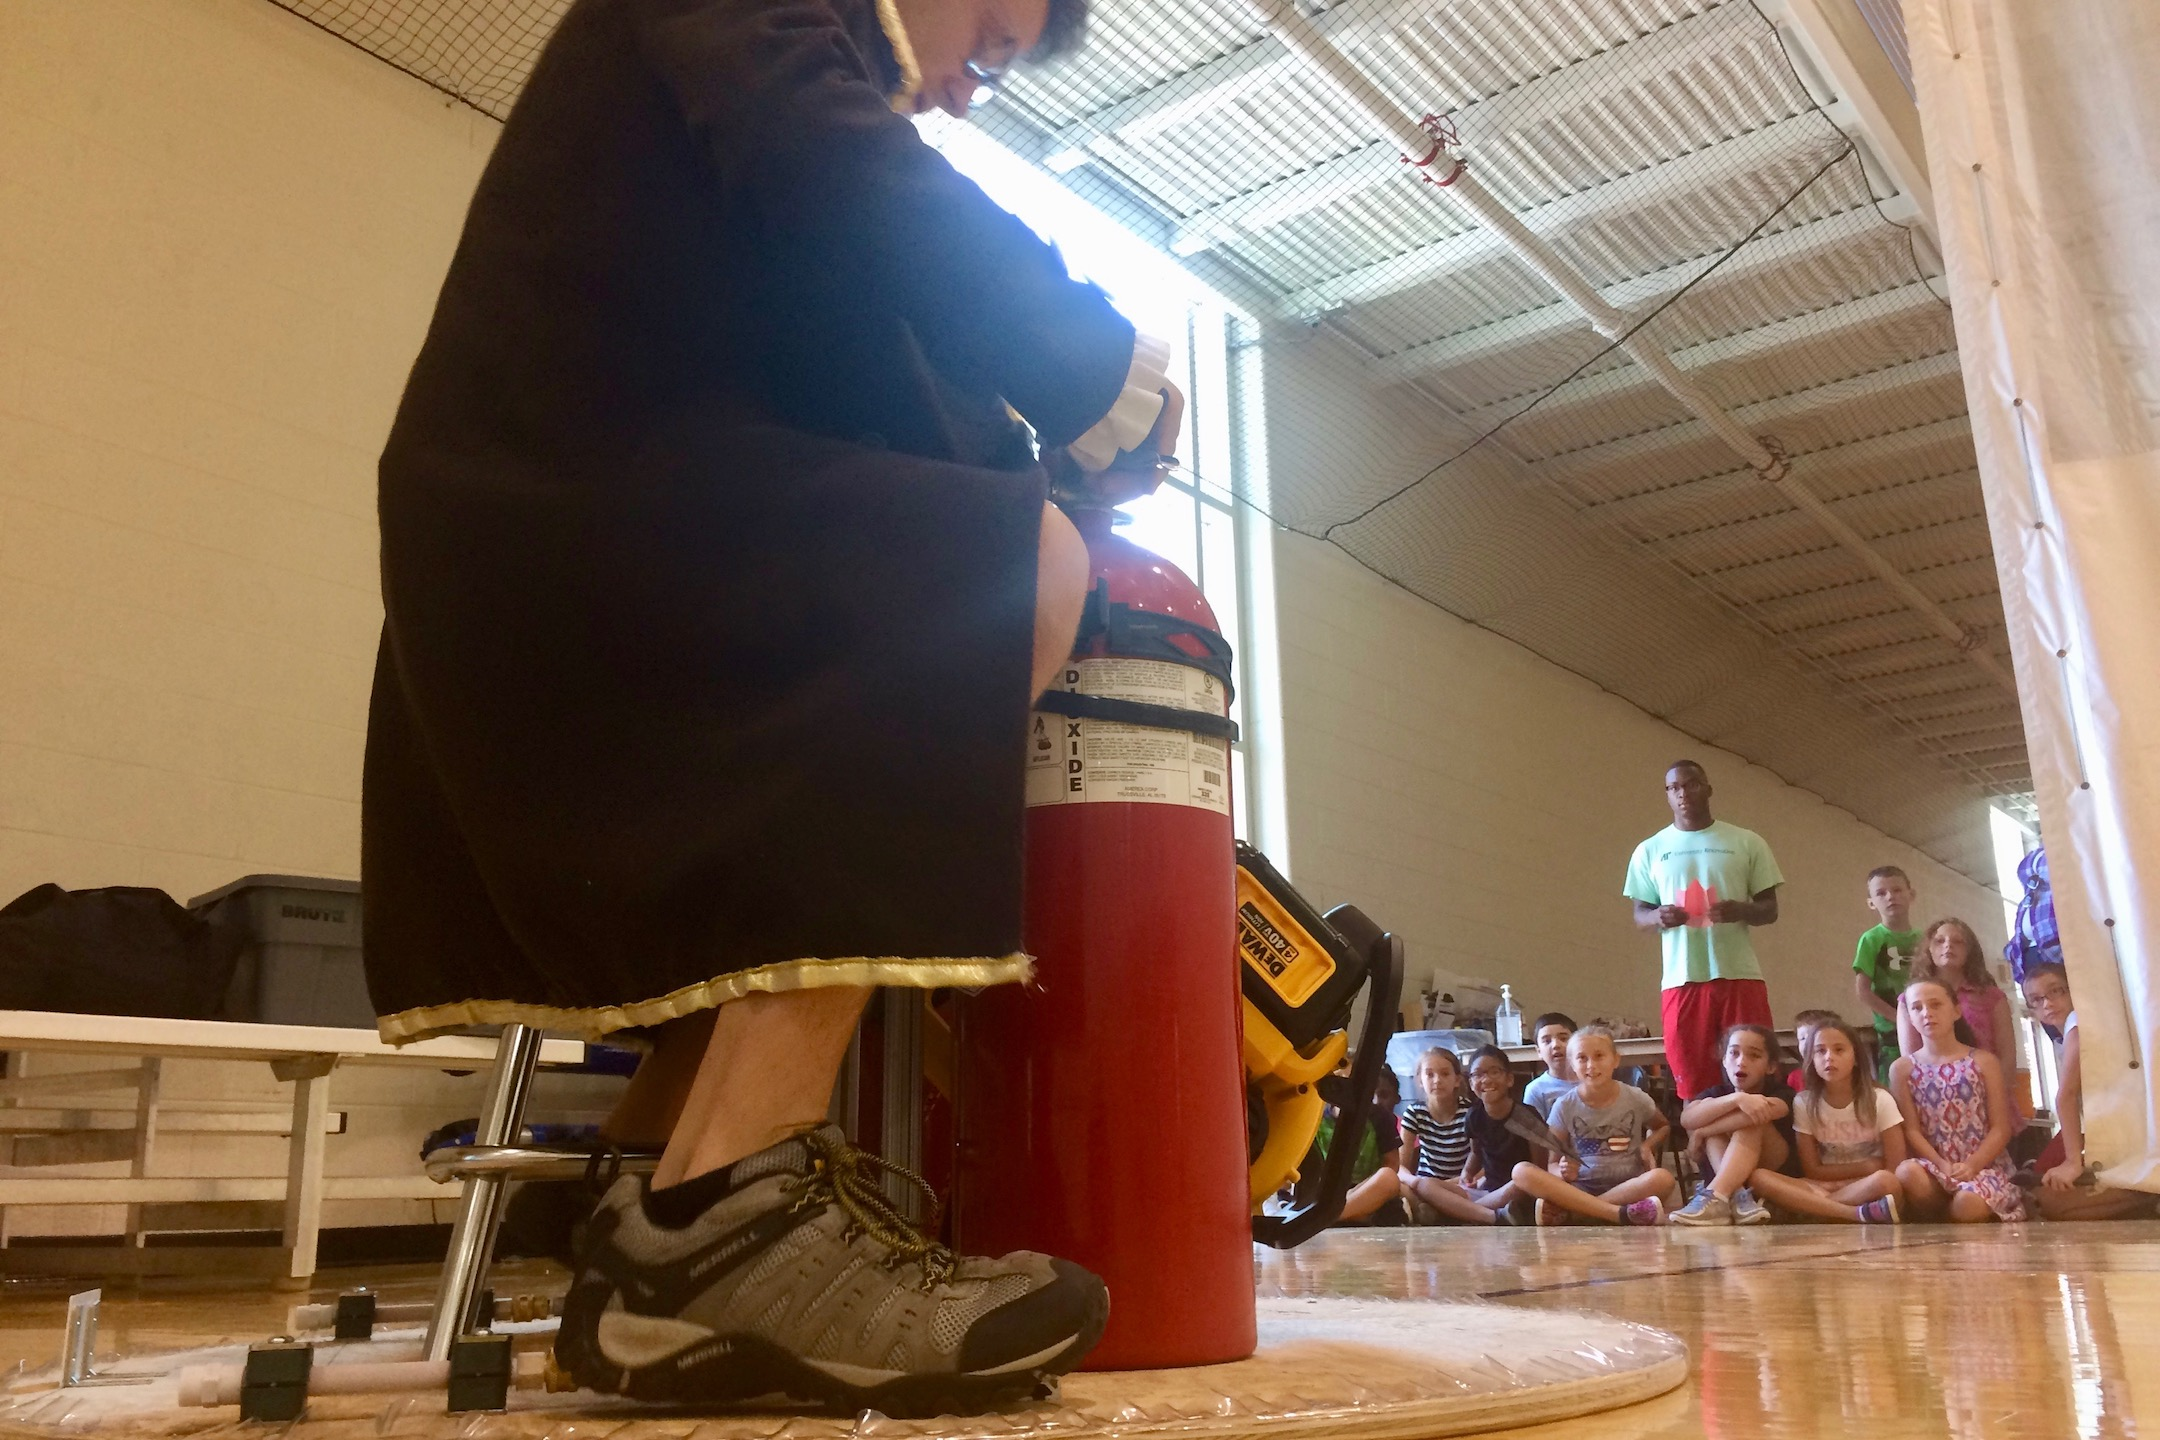 APSU's Bryan Gaither prepares to don an Iron Man mask and his across the gym floor on his homemade hovercraft. Attendees of the university's Junior Govs Summer Camp are in the background.